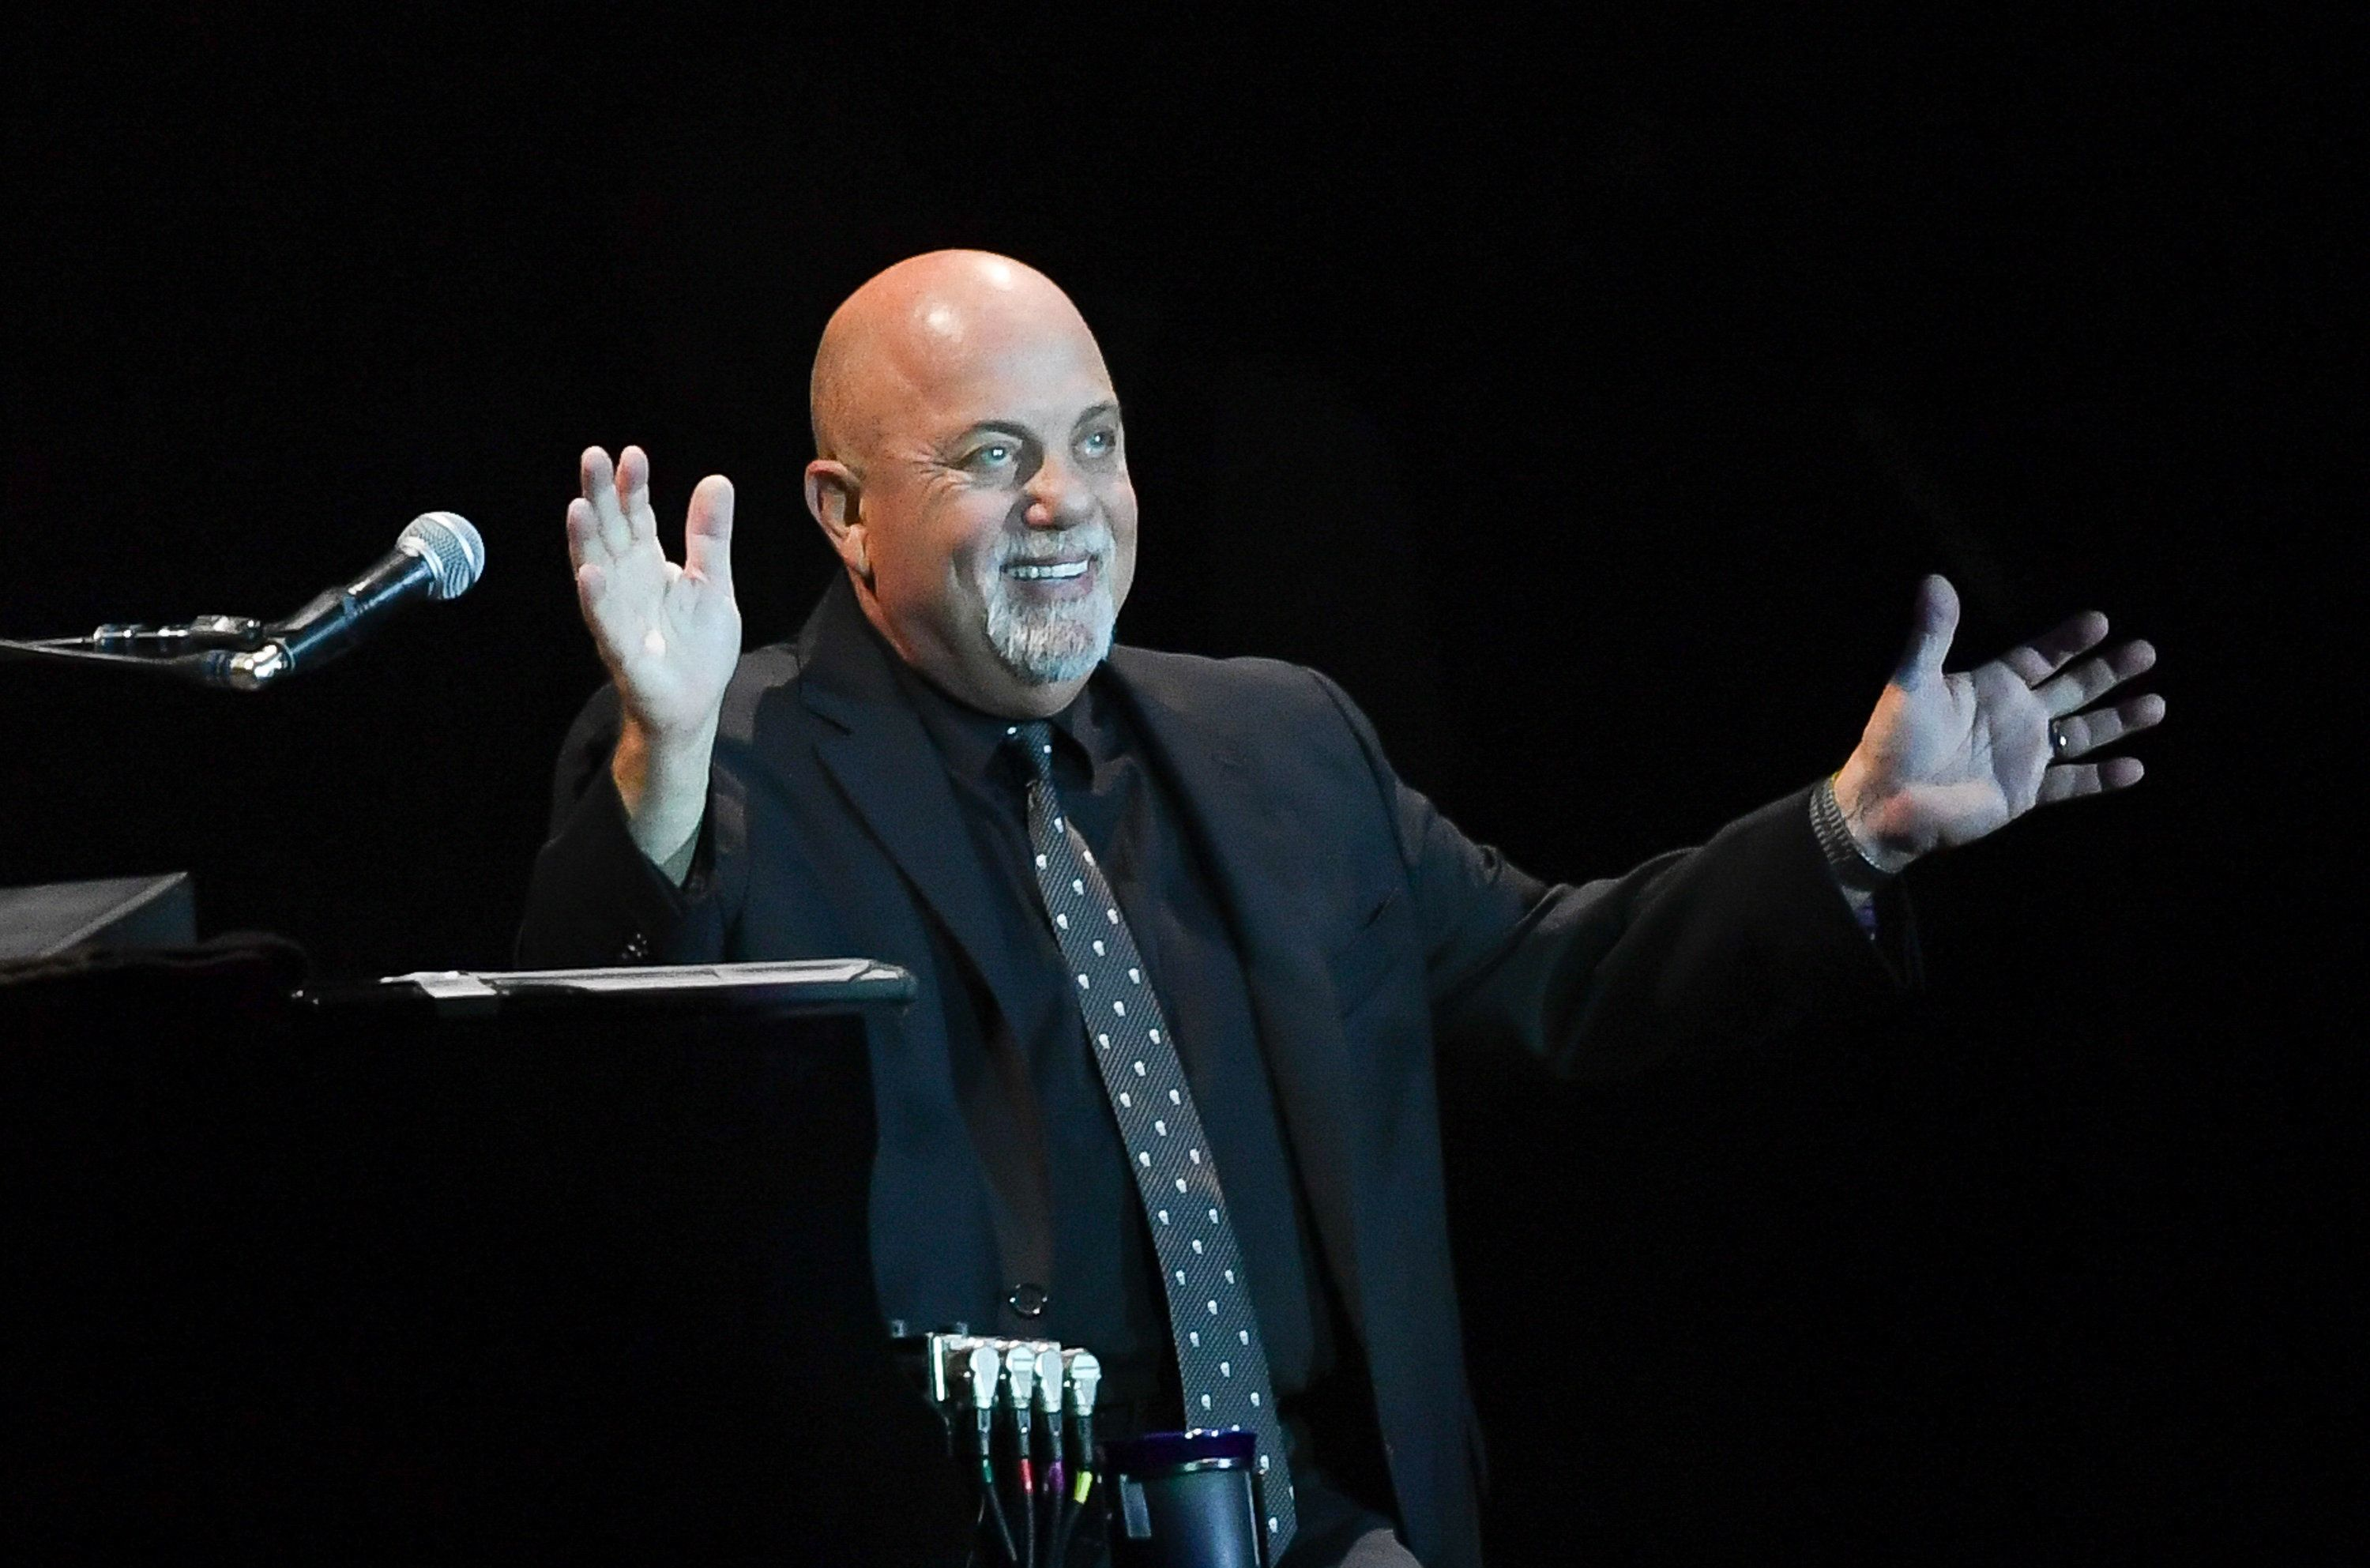 LONDON, ENGLAND - SEPTEMBER 10:  Billy Joel performs at Wembley Stadium on September 10, 2016 in London, England.  (Photo by Samir Hussein/Getty Images)